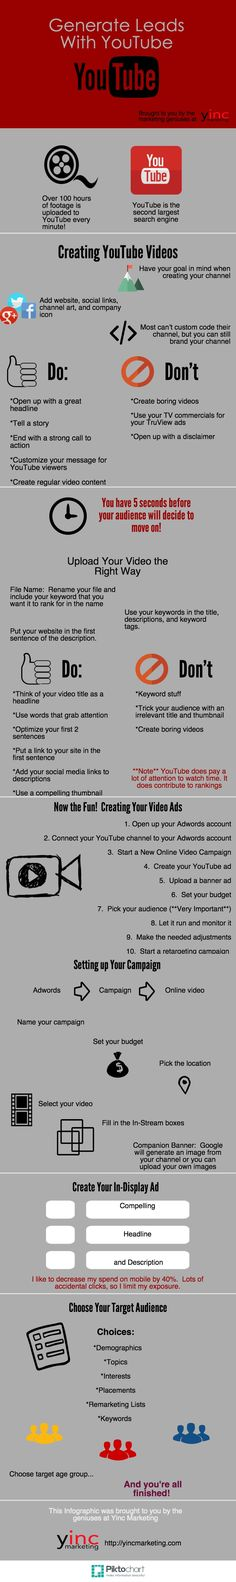 Generate Leads With YouTube-The Ultimate Guide | Yinc Marketing